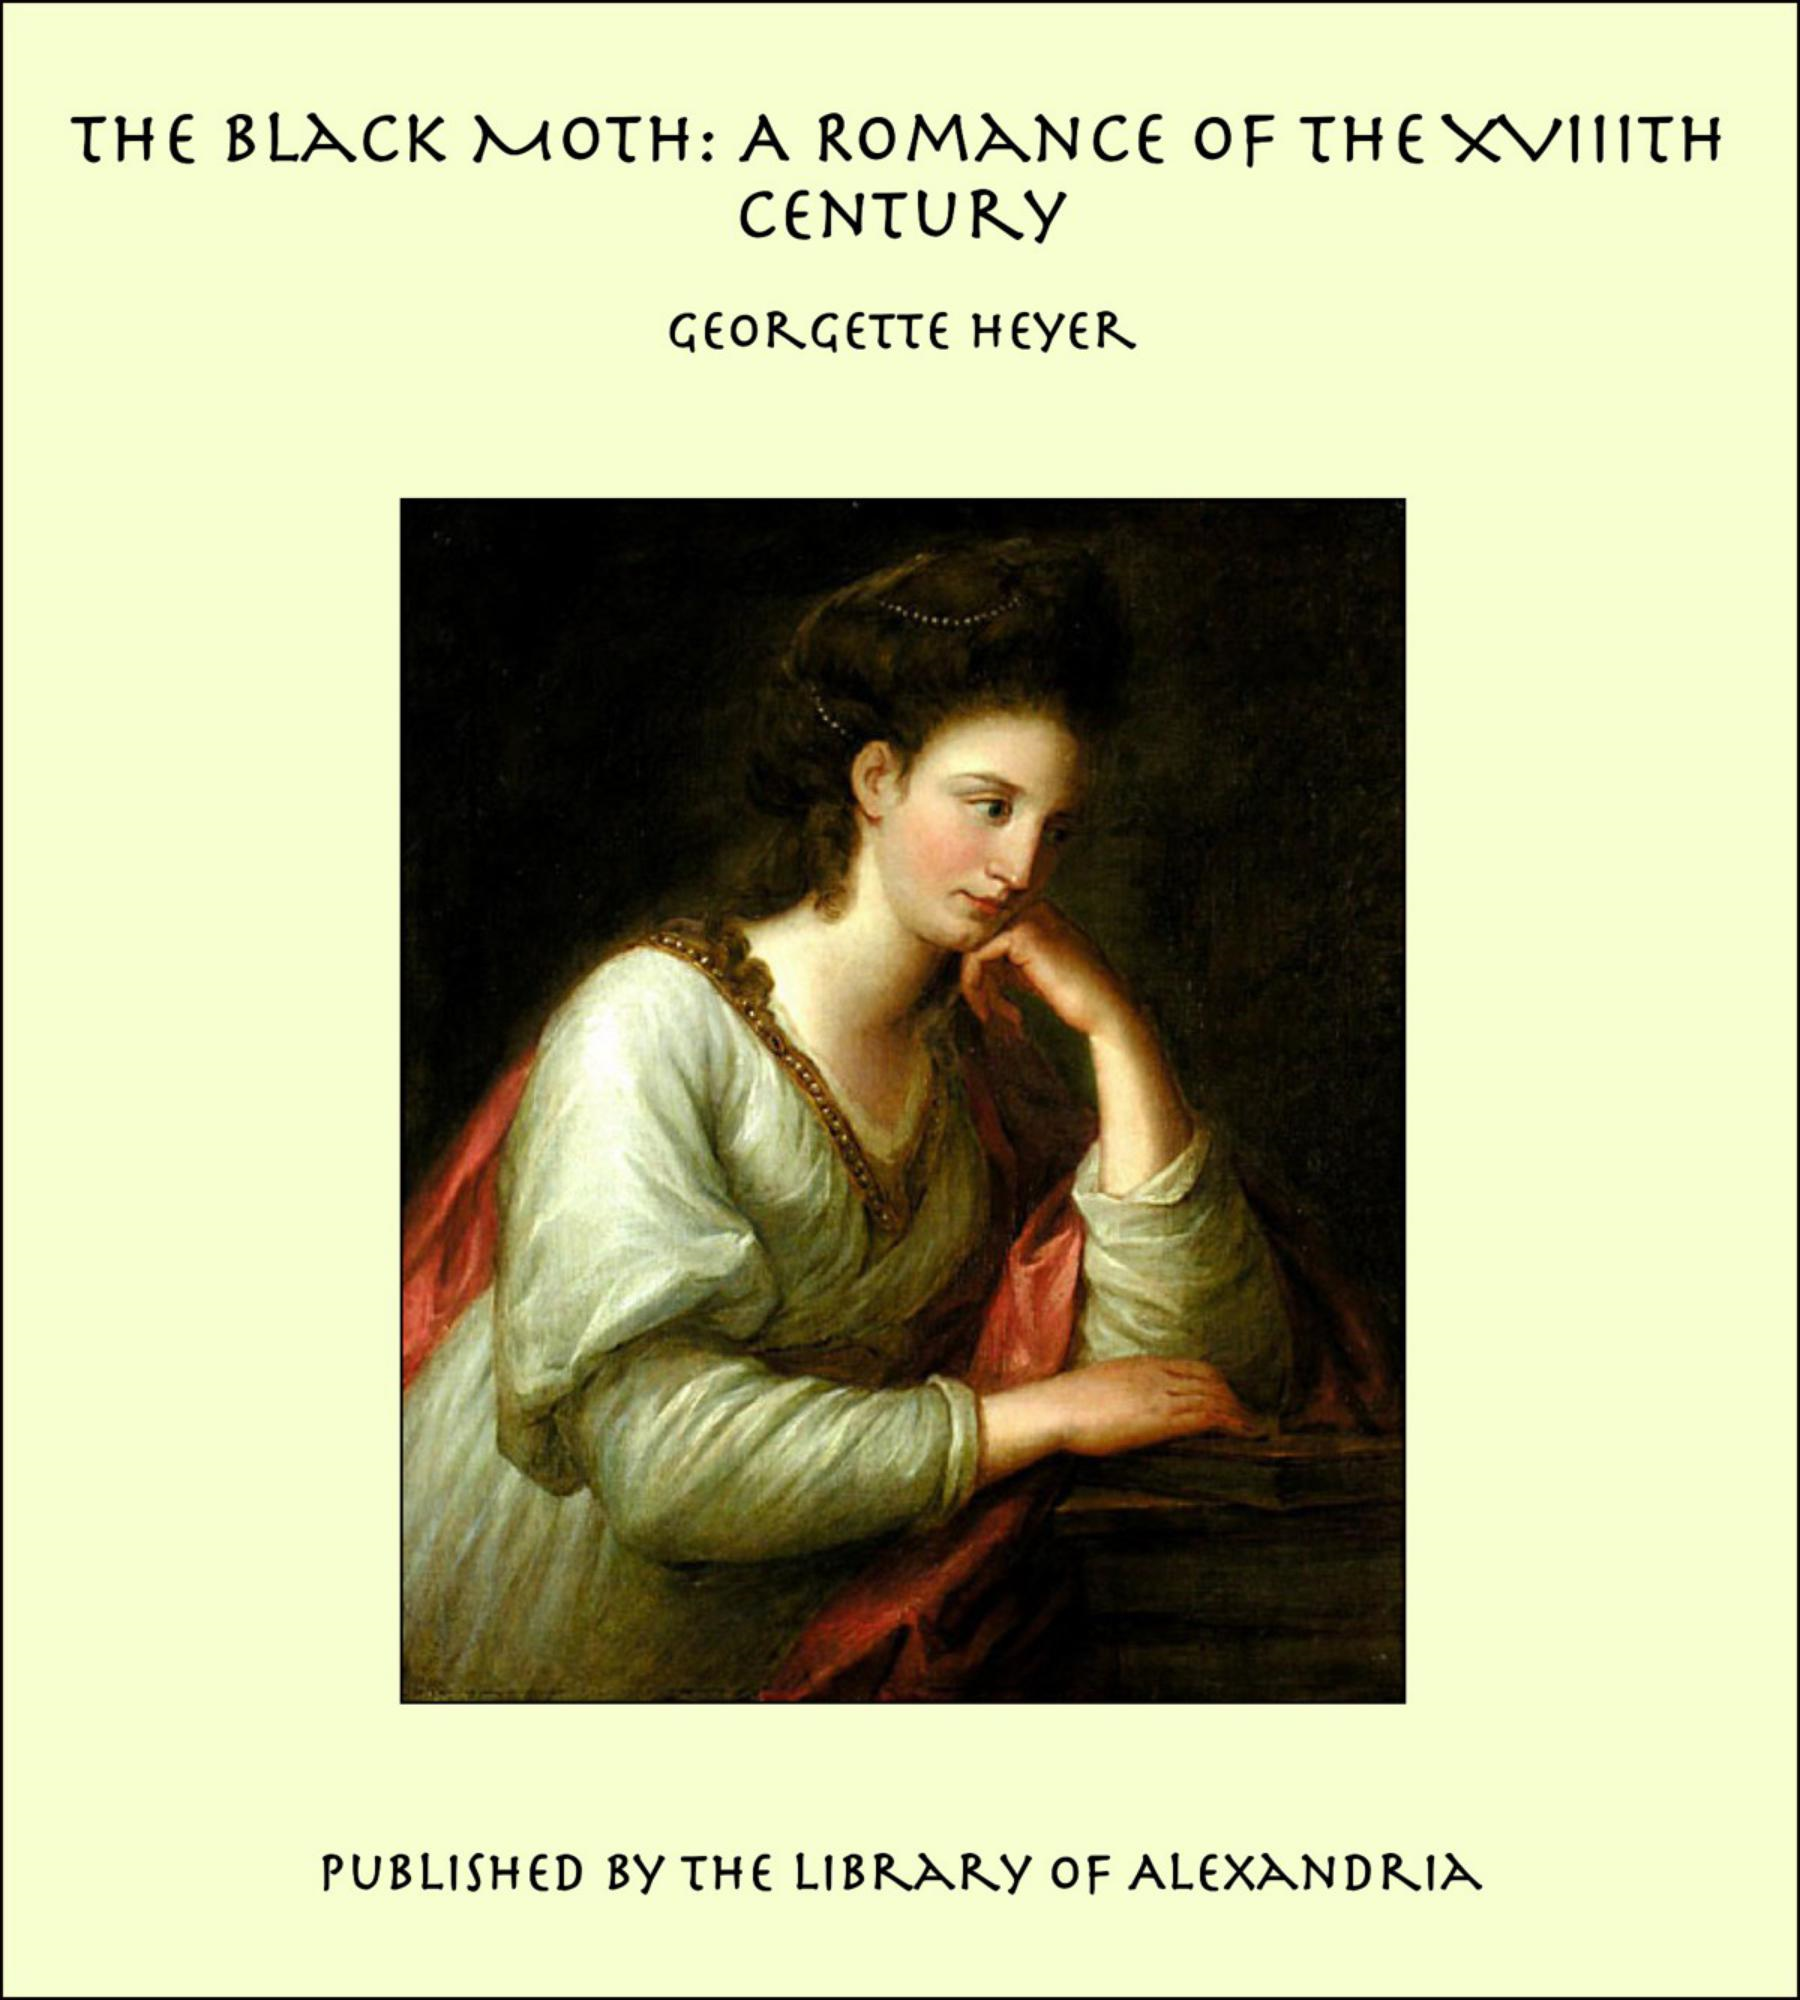 Georgette Heyer - The Black Moth: A Romance of the XVIIIth Century